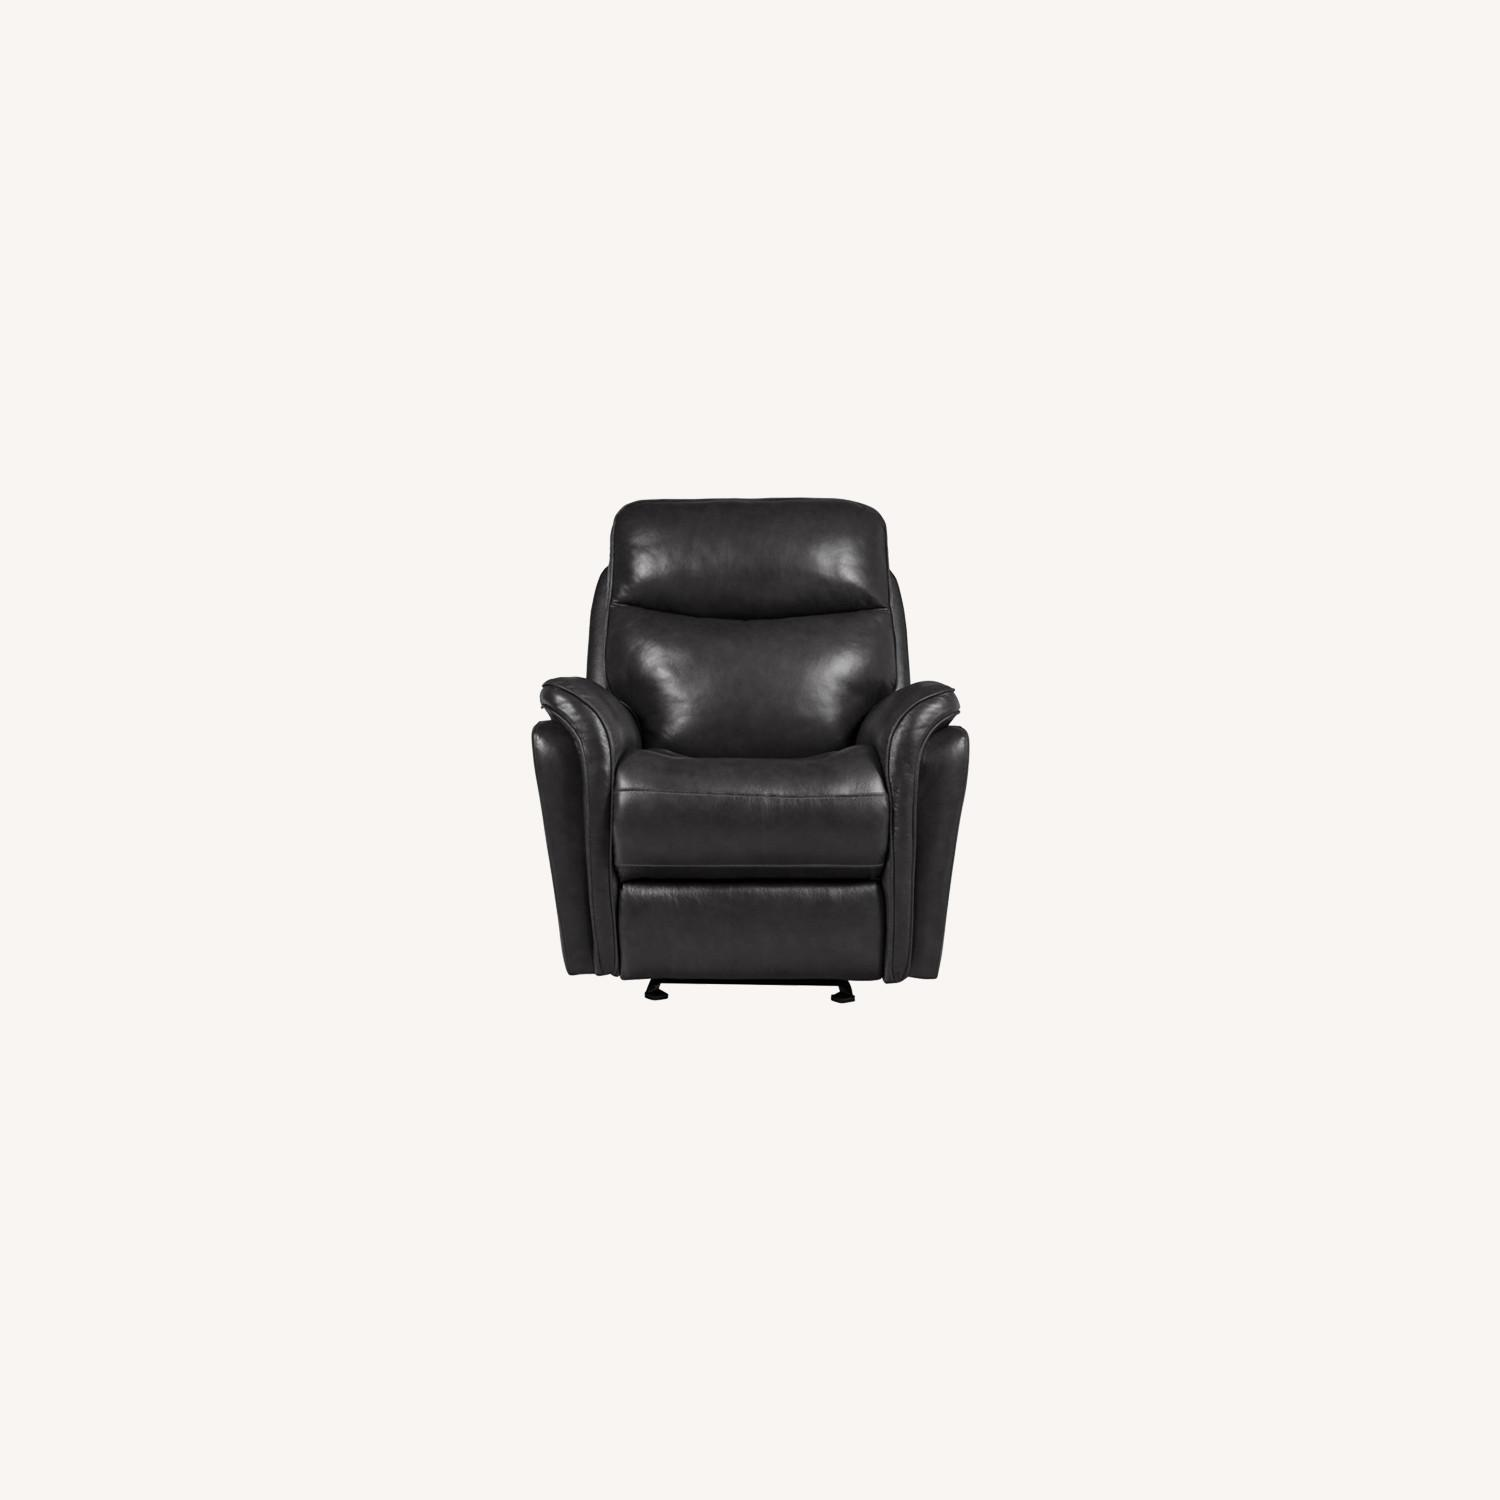 Power Glider Recliner In Charcoal Leather - image-8